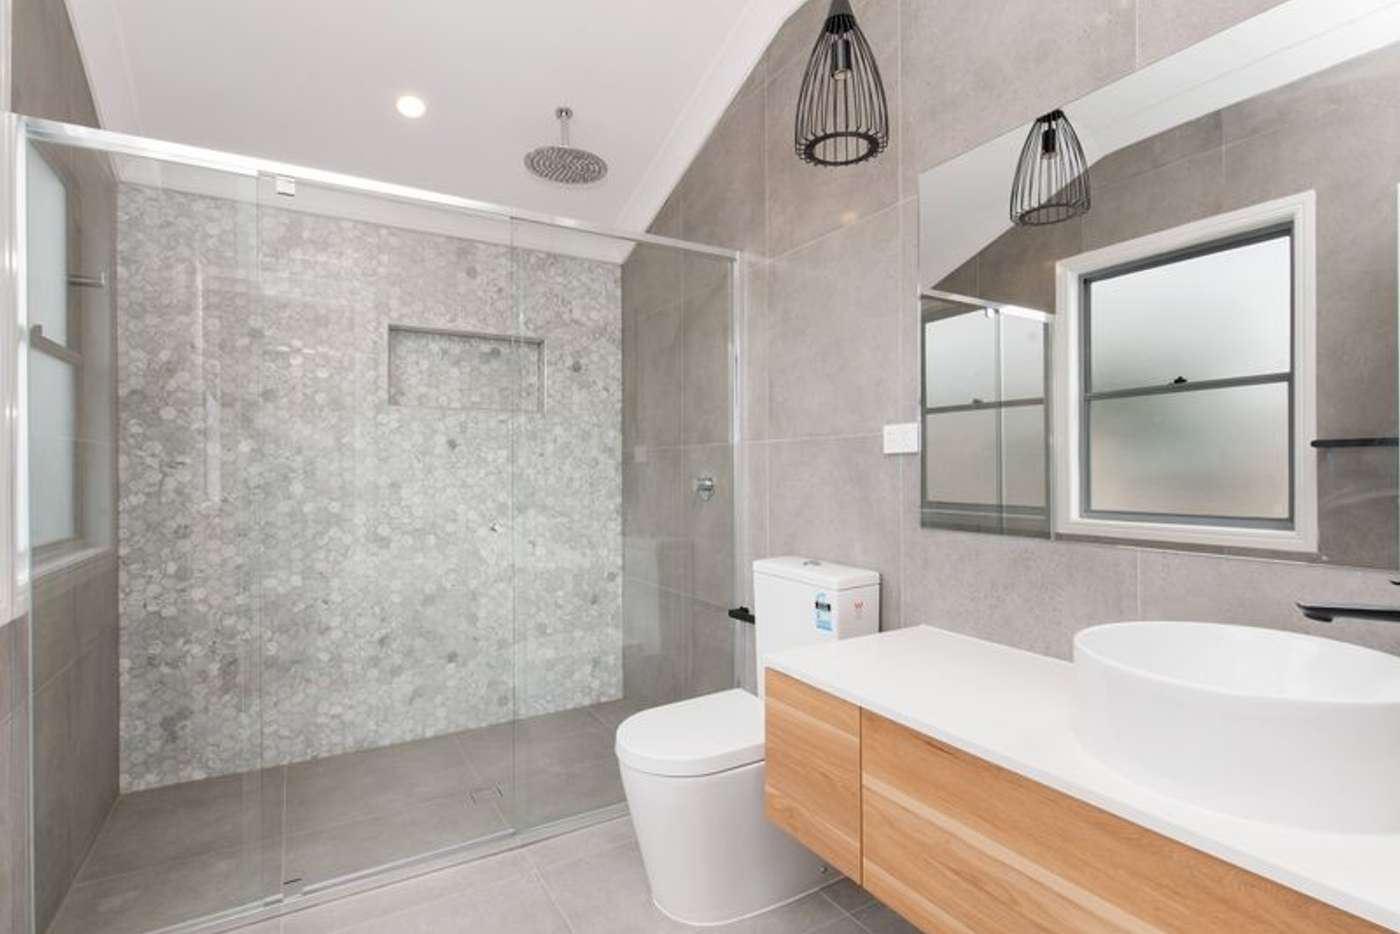 Seventh view of Homely house listing, 1/169 Park Road, Woolloongabba QLD 4102